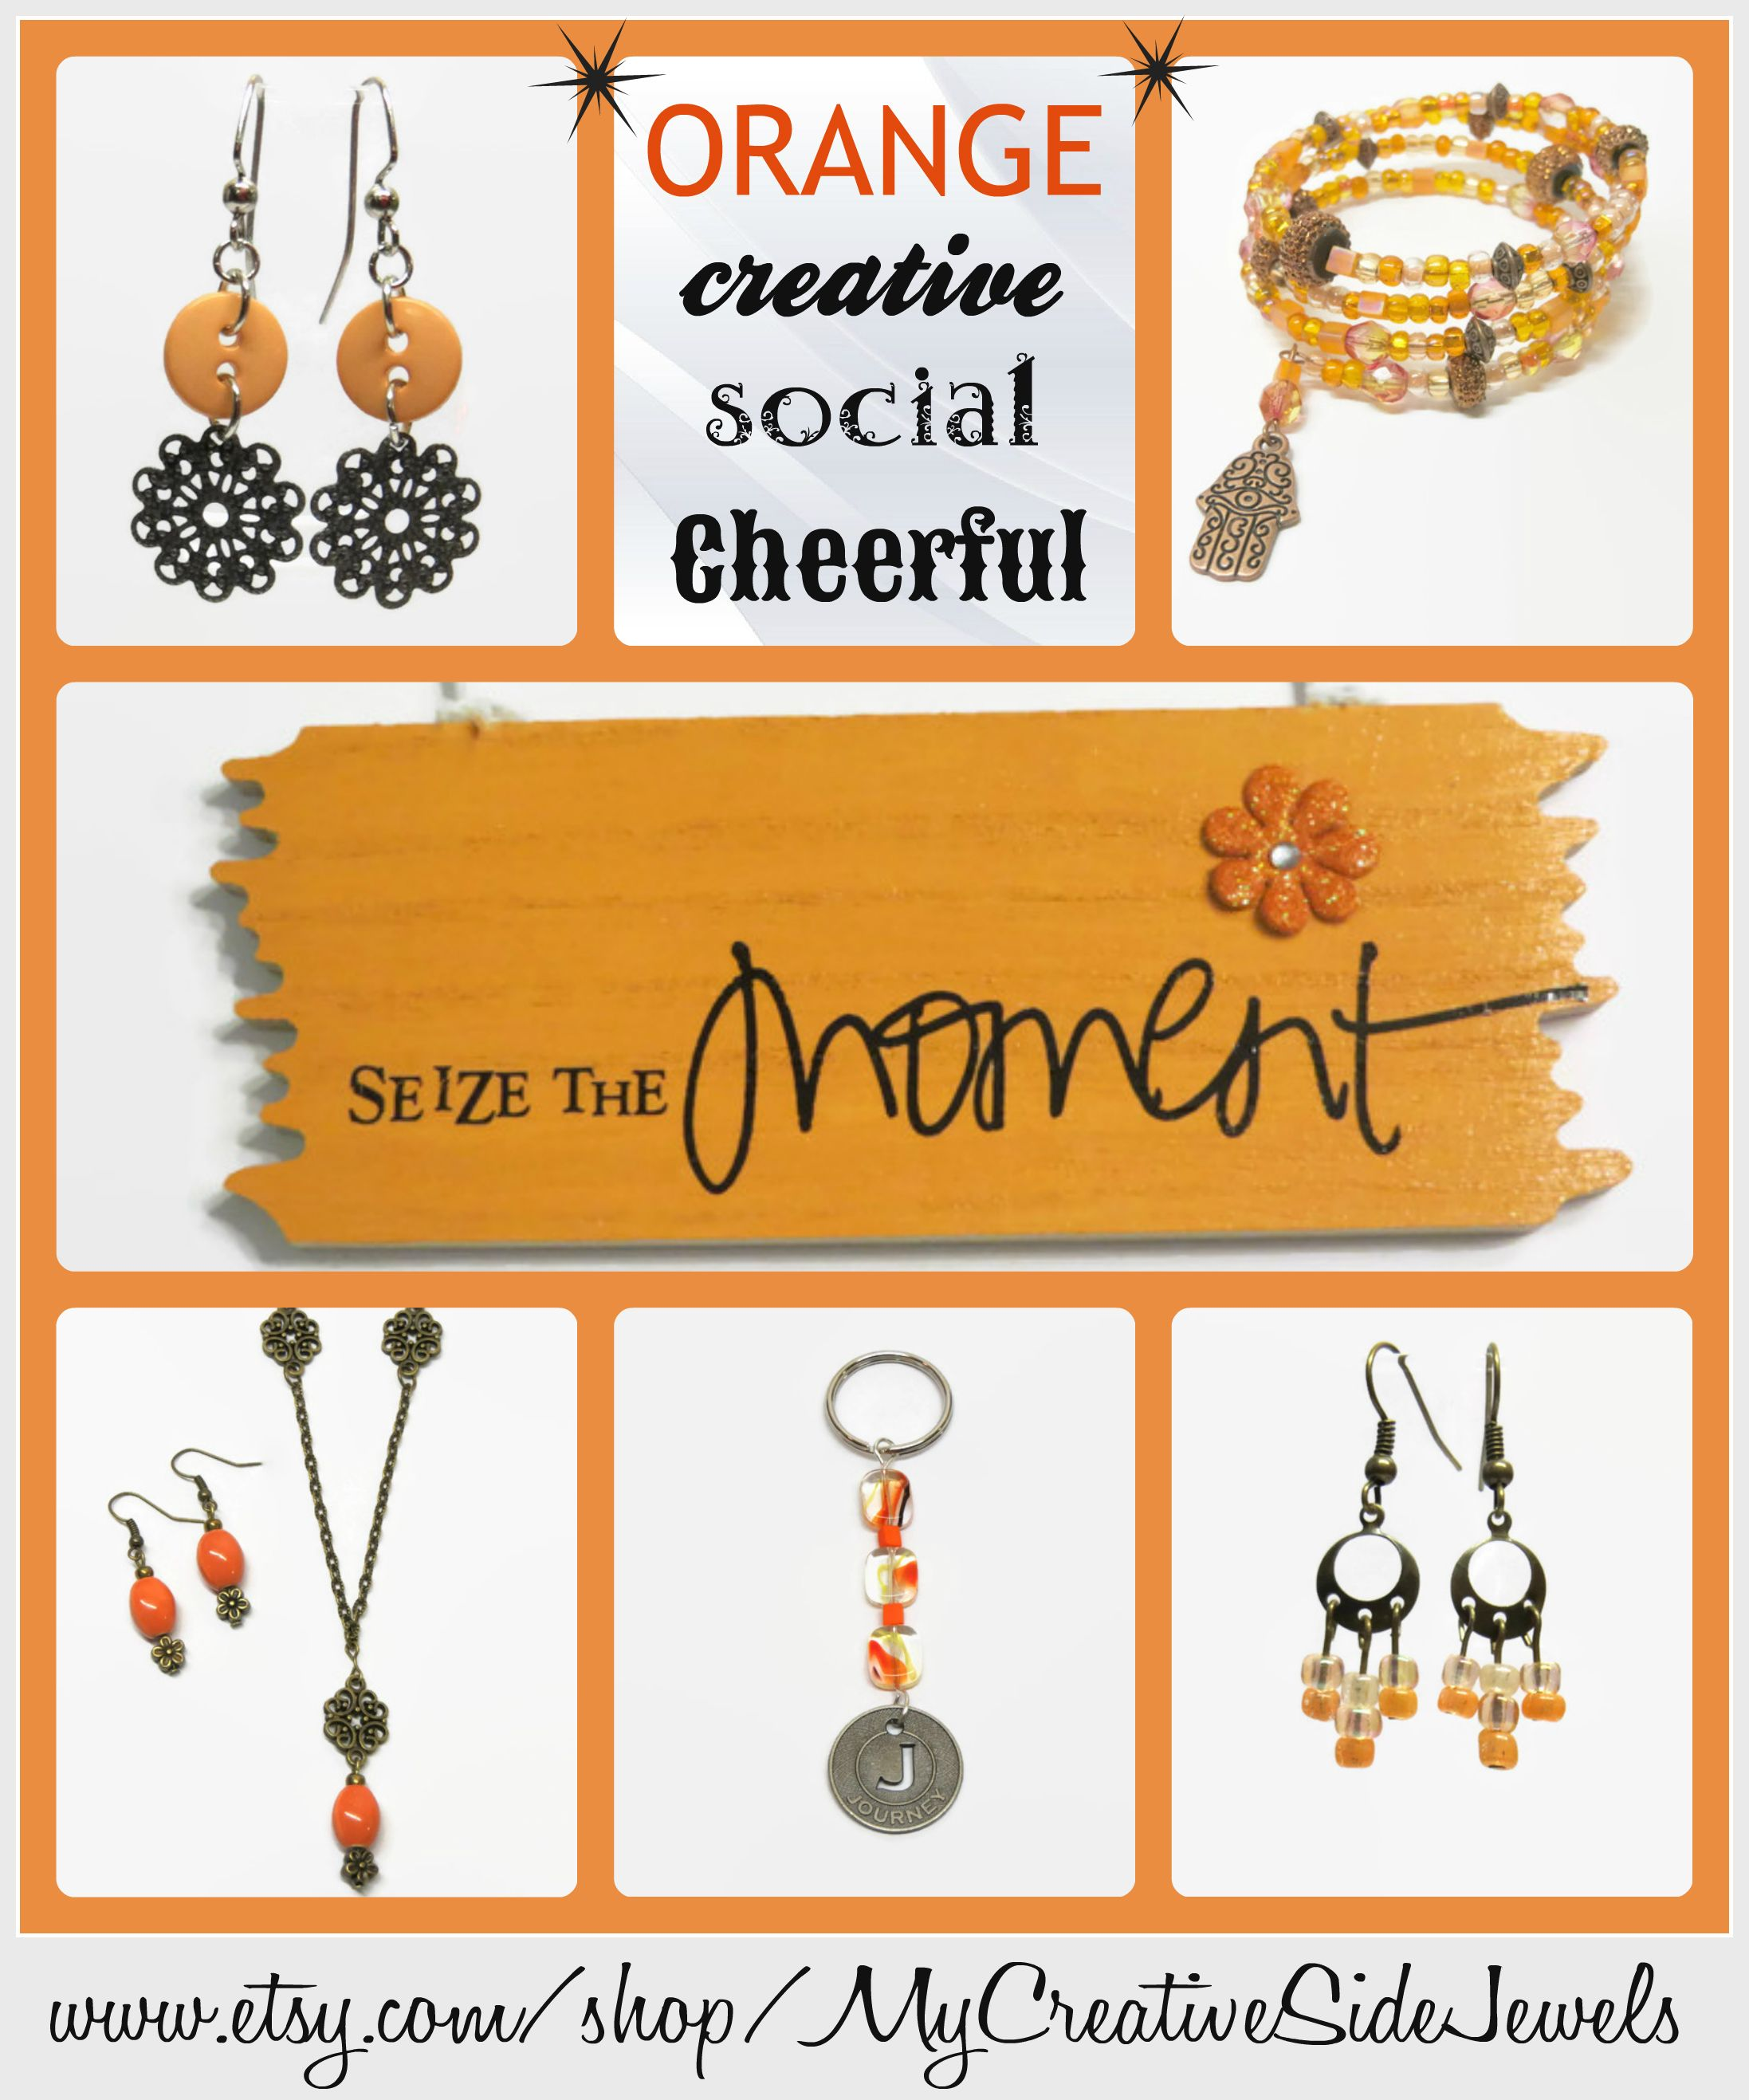 Jewelry with meaning.  Orange symbolizes being creative, social and cheerful.  SHOP: https://www.etsy.com/shop/MyCreativeSideJewels